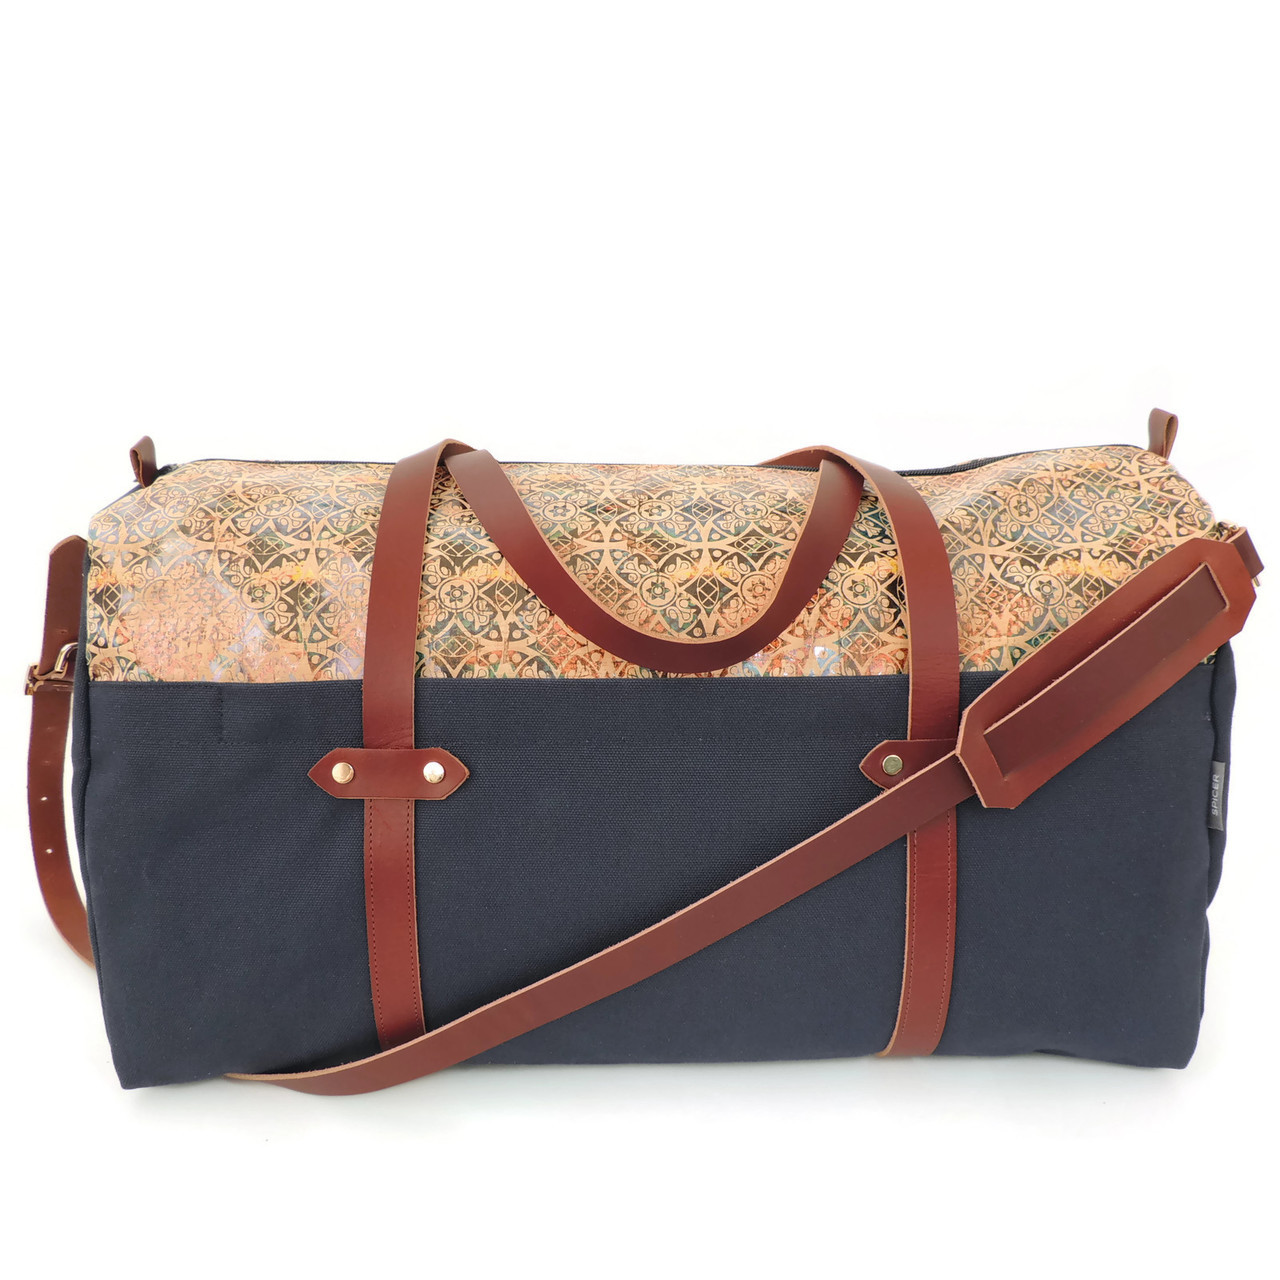 Duffle in Fes Tile Cork